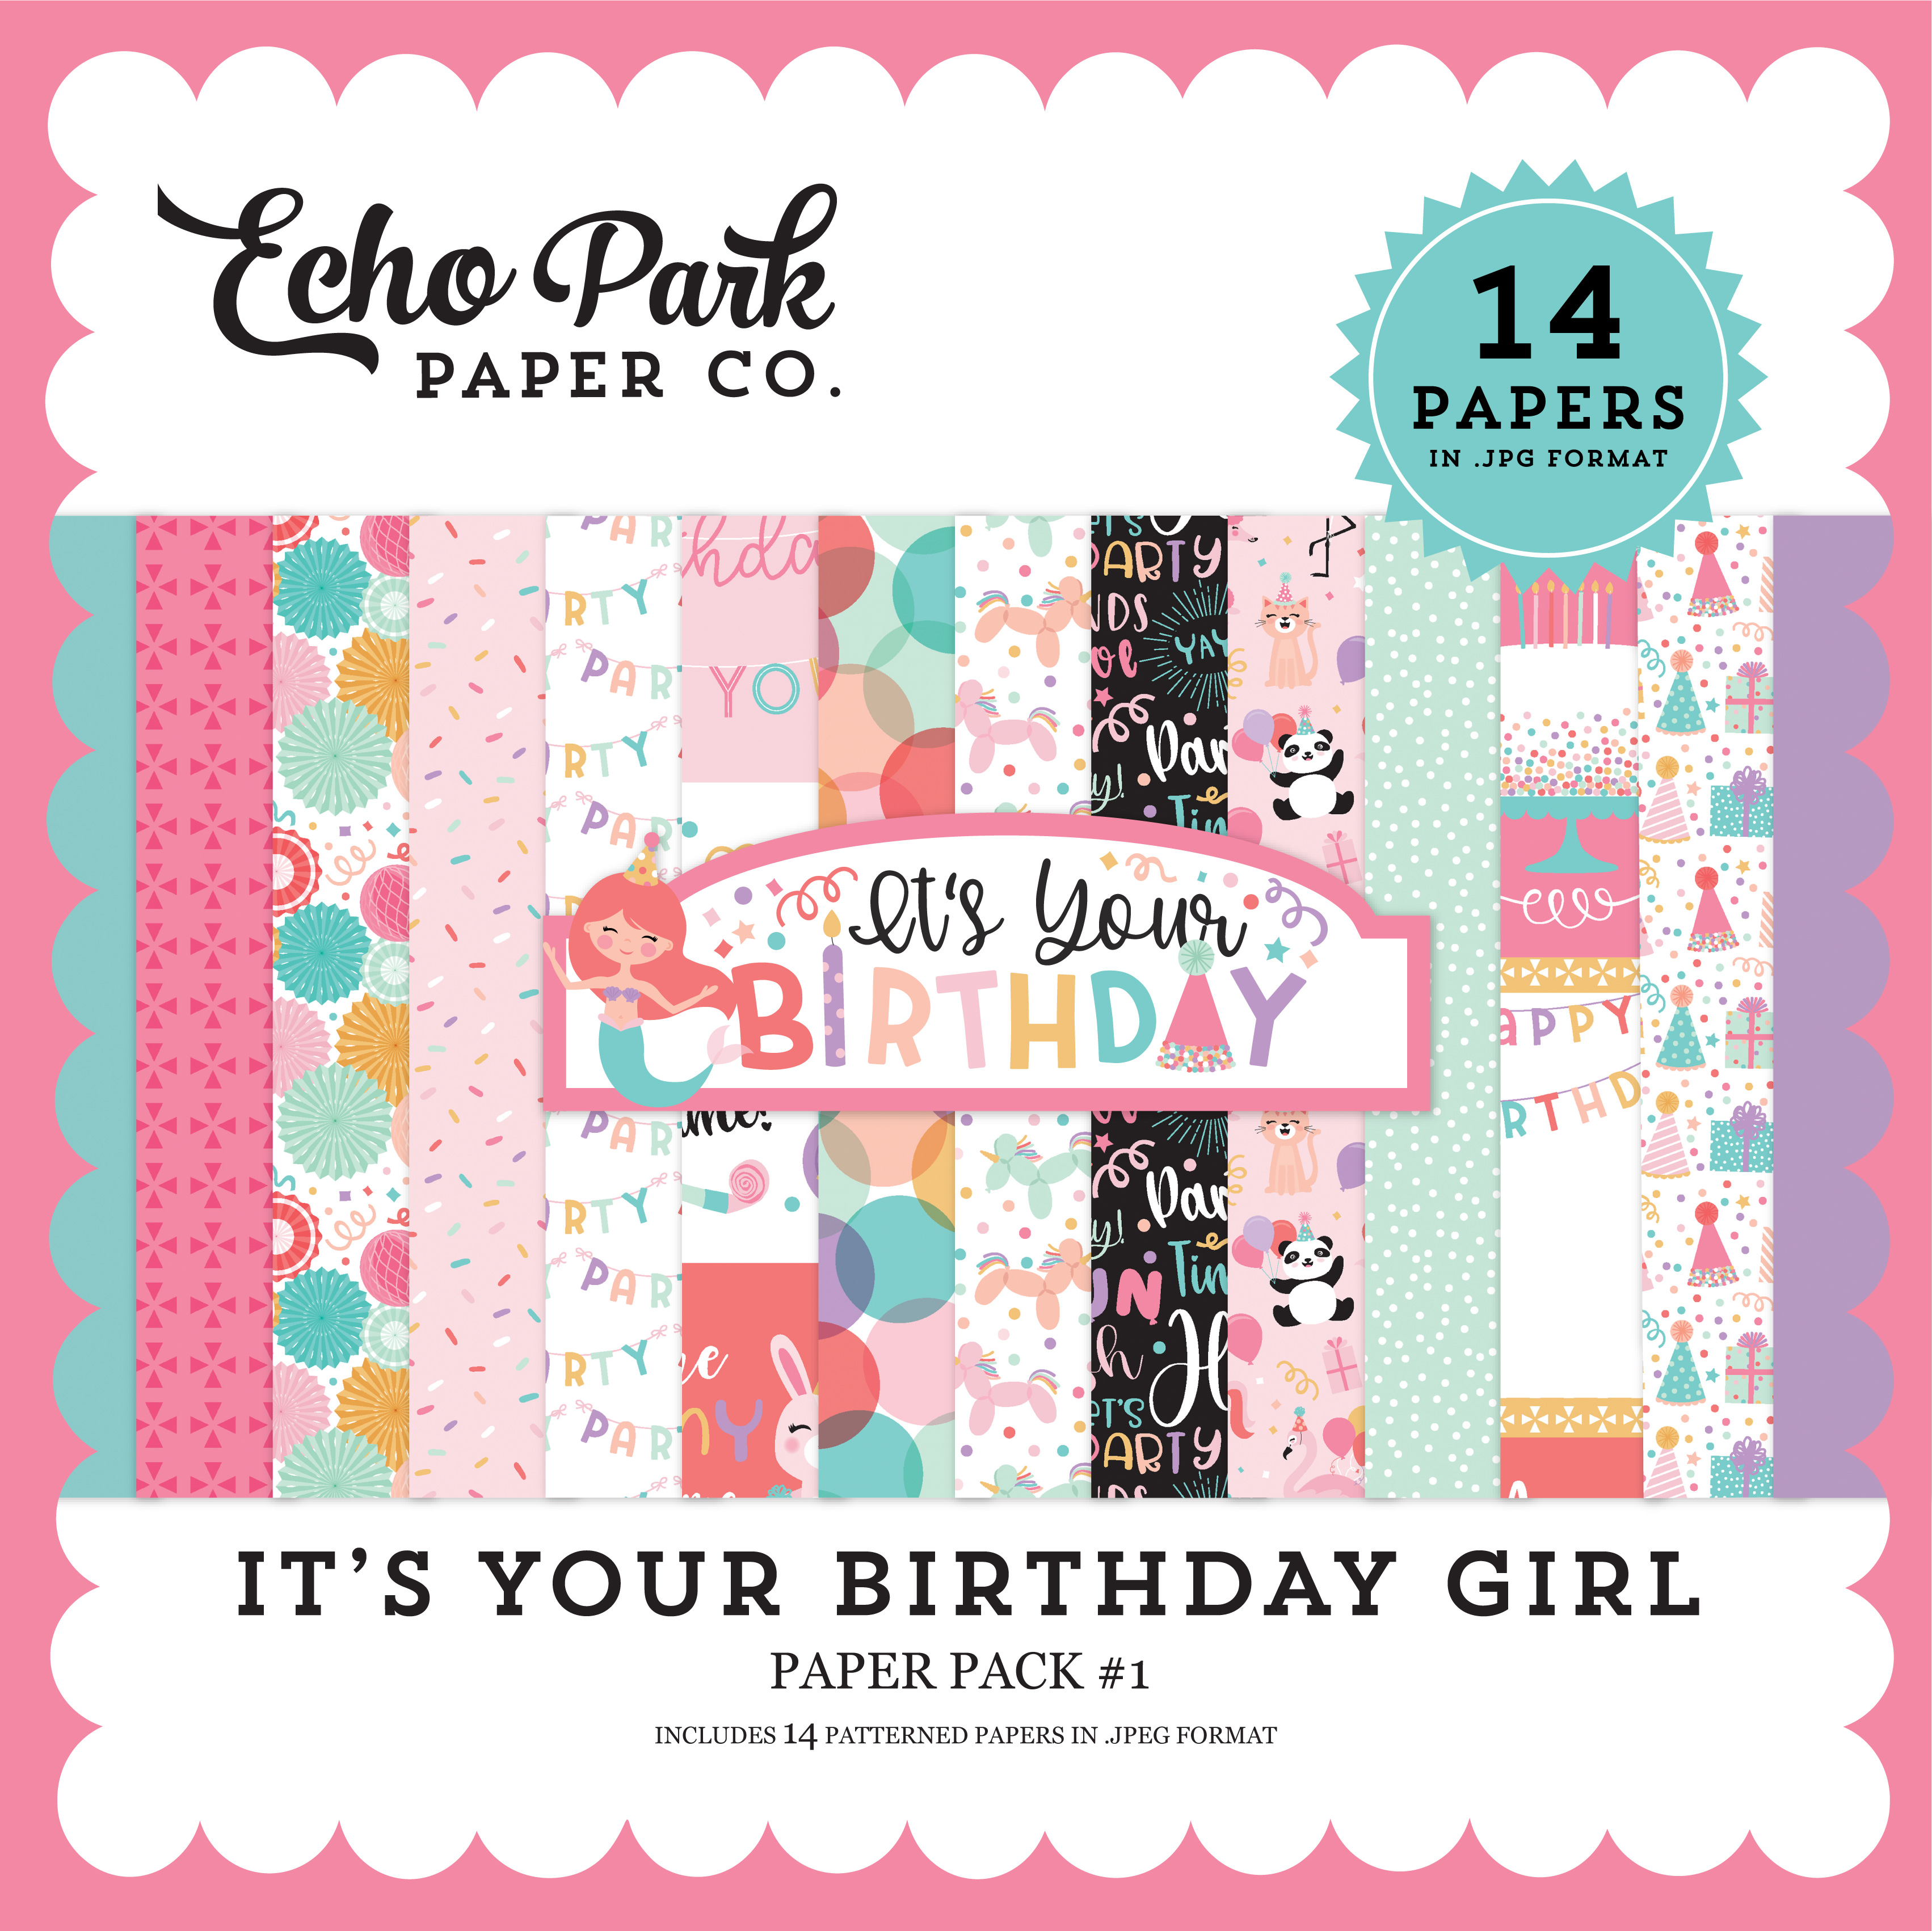 It's Your Birthday Girl Paper Pack #1